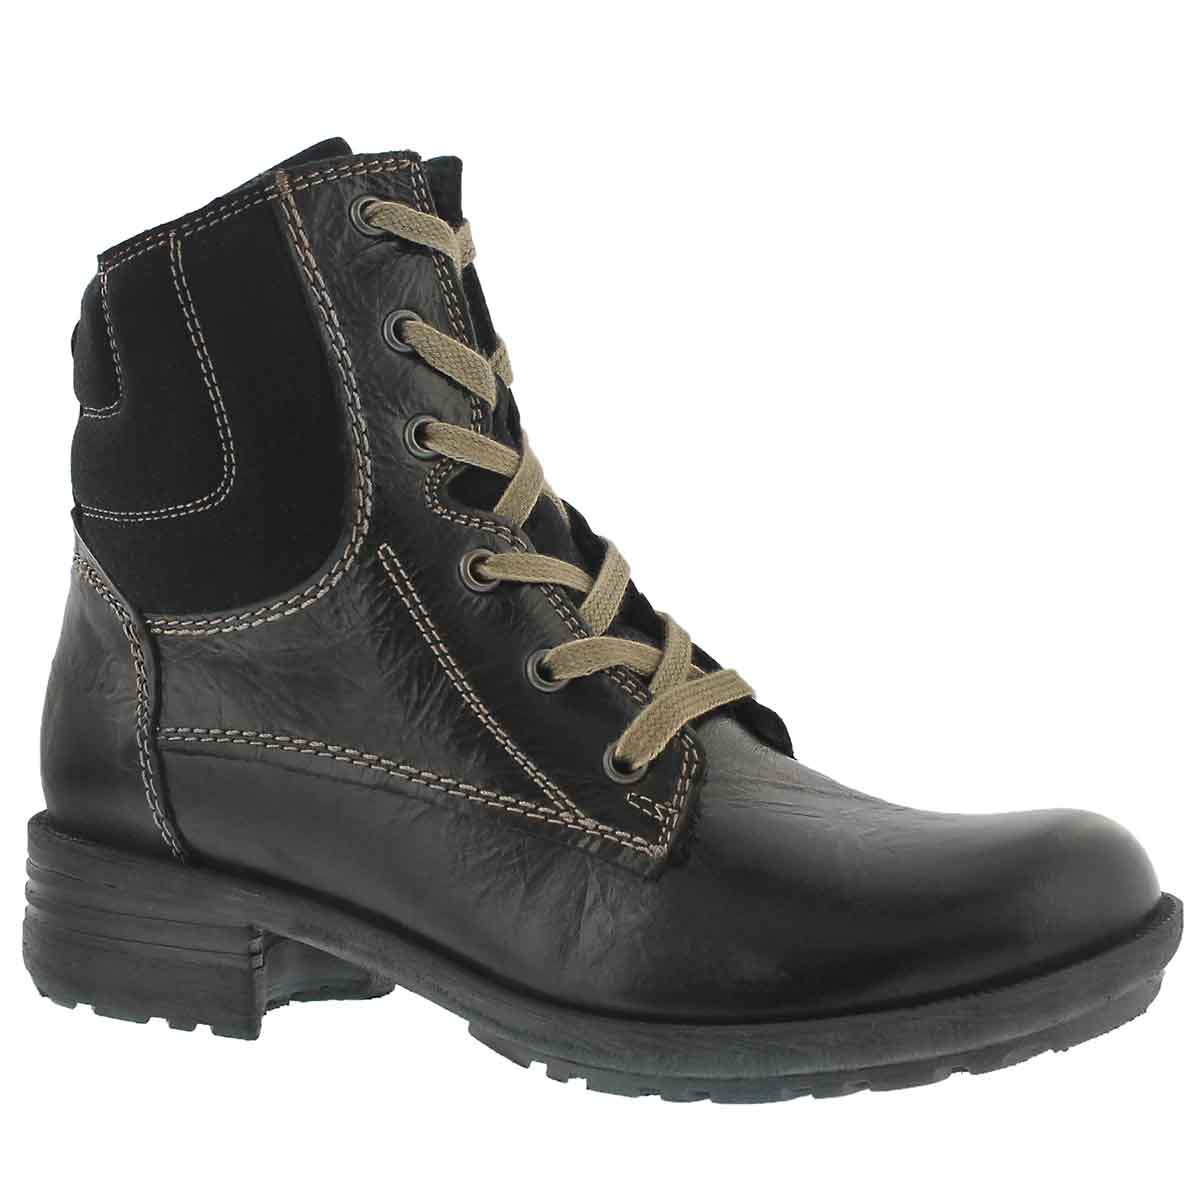 Lds Sandra 64 schwarz laceup casual boot